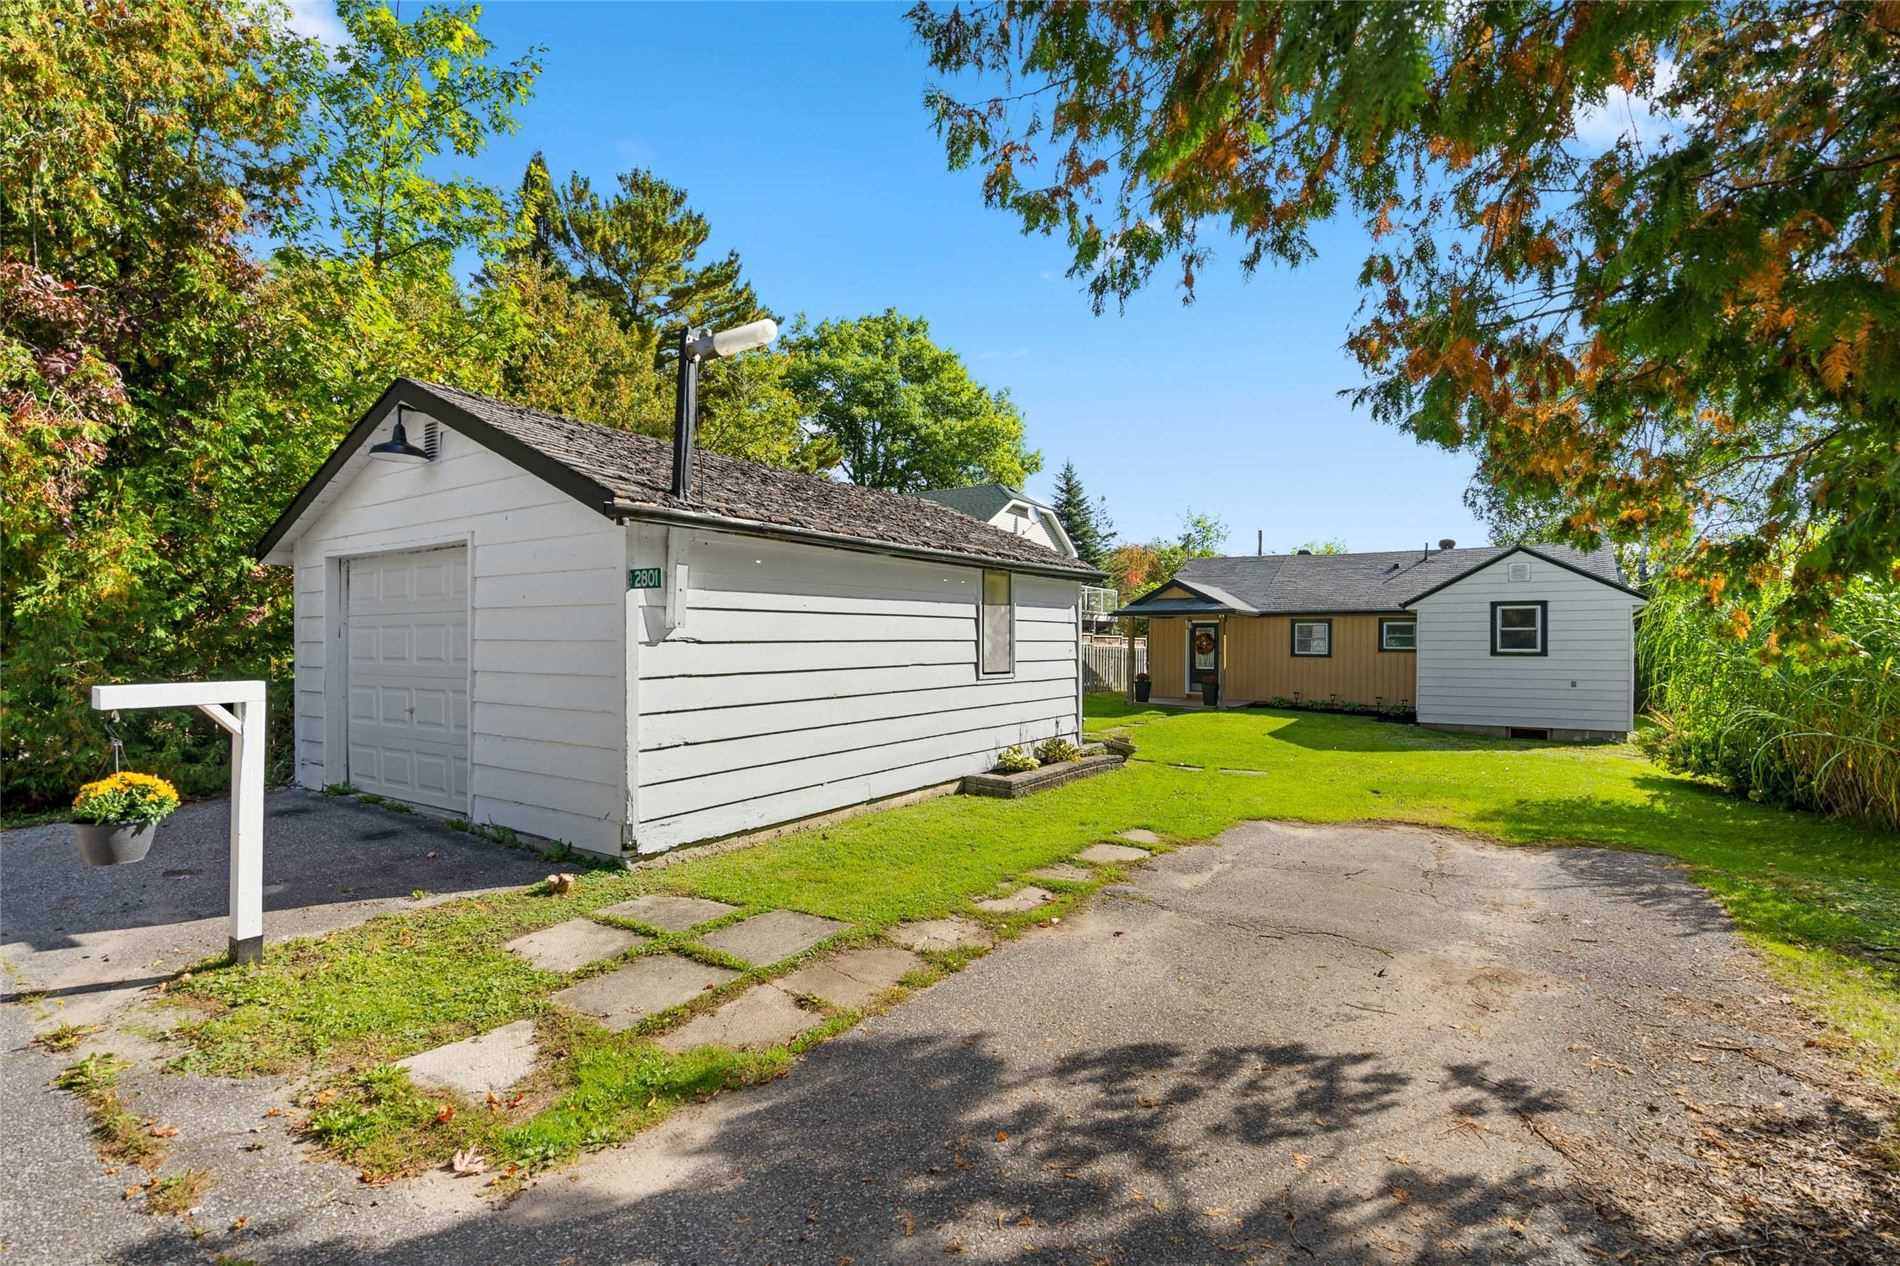 Detached house For Sale In Severn - 2801 The Lane, Severn, Ontario, Canada L0K 1G0 , 3 Bedrooms Bedrooms, ,1 BathroomBathrooms,Detached,For Sale,The Lane